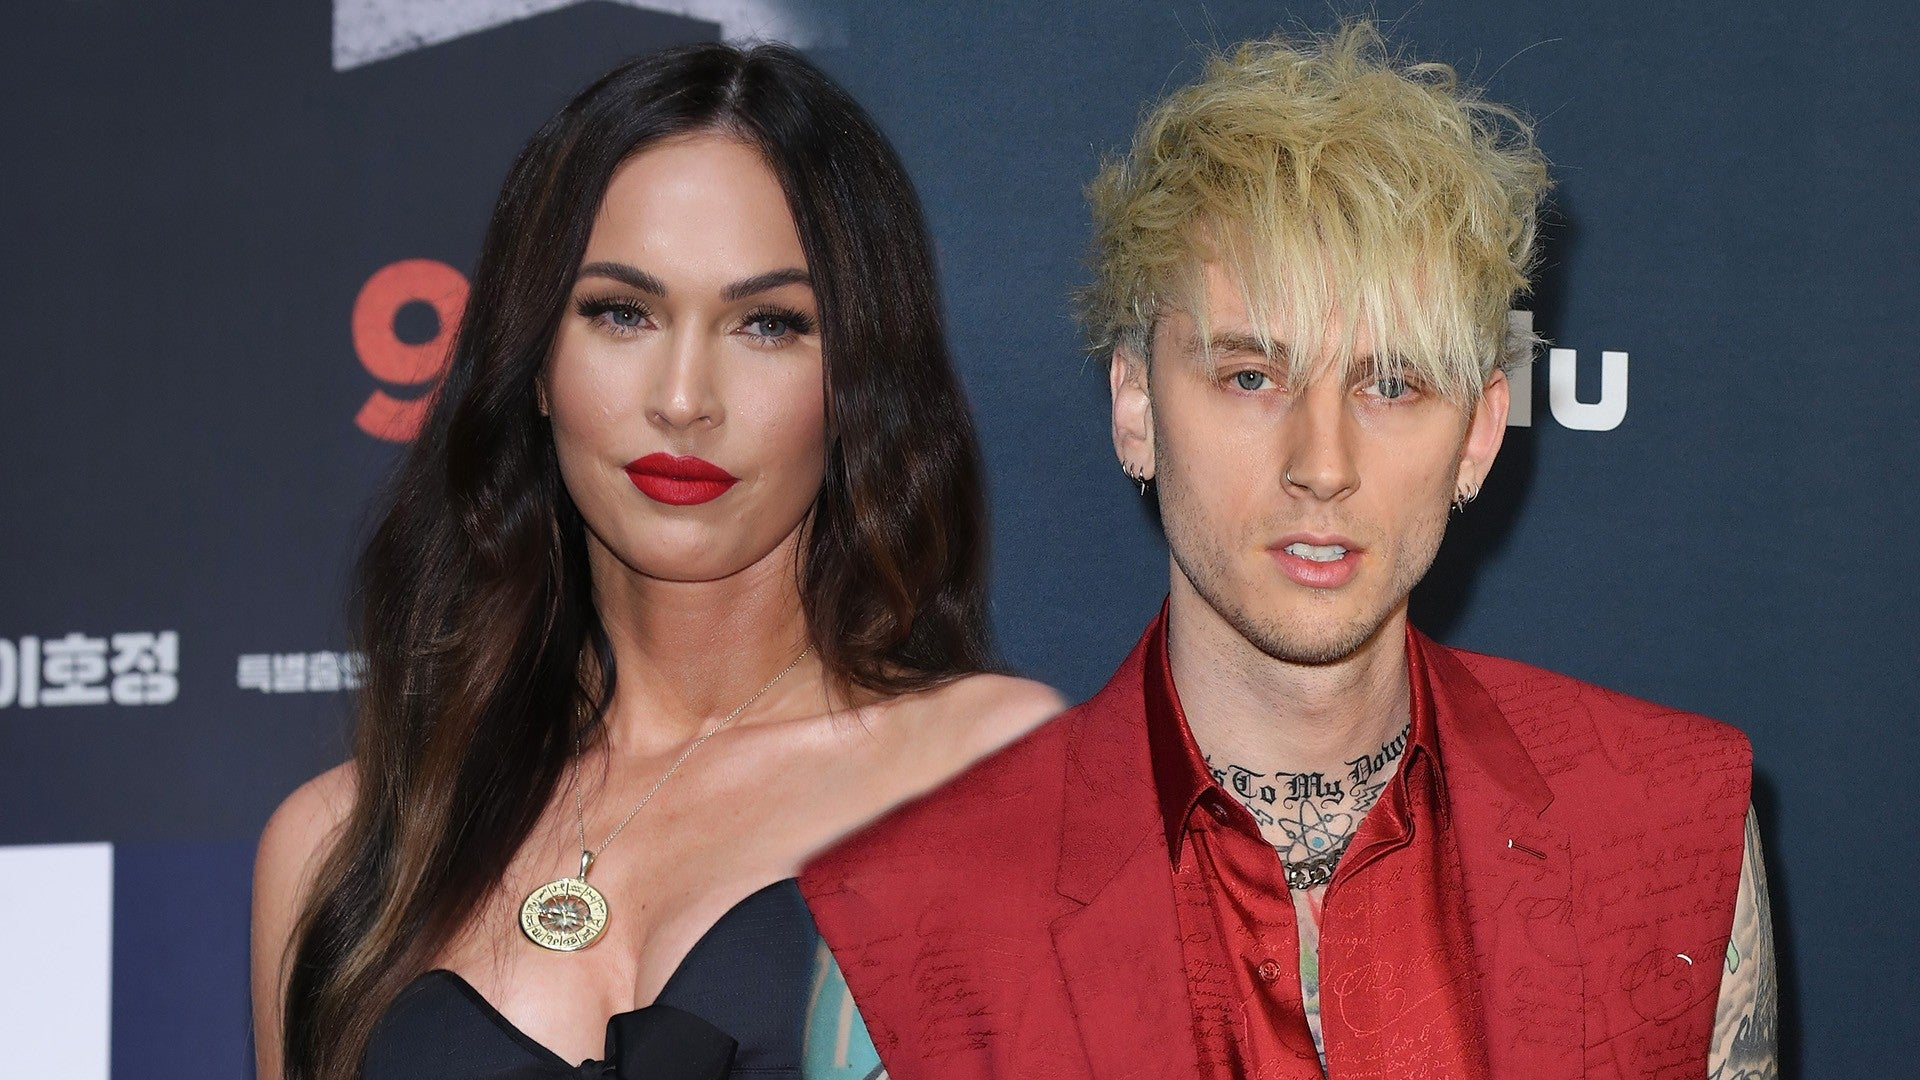 Megan Fox and Machine Gun Kelly reveal about their love connection